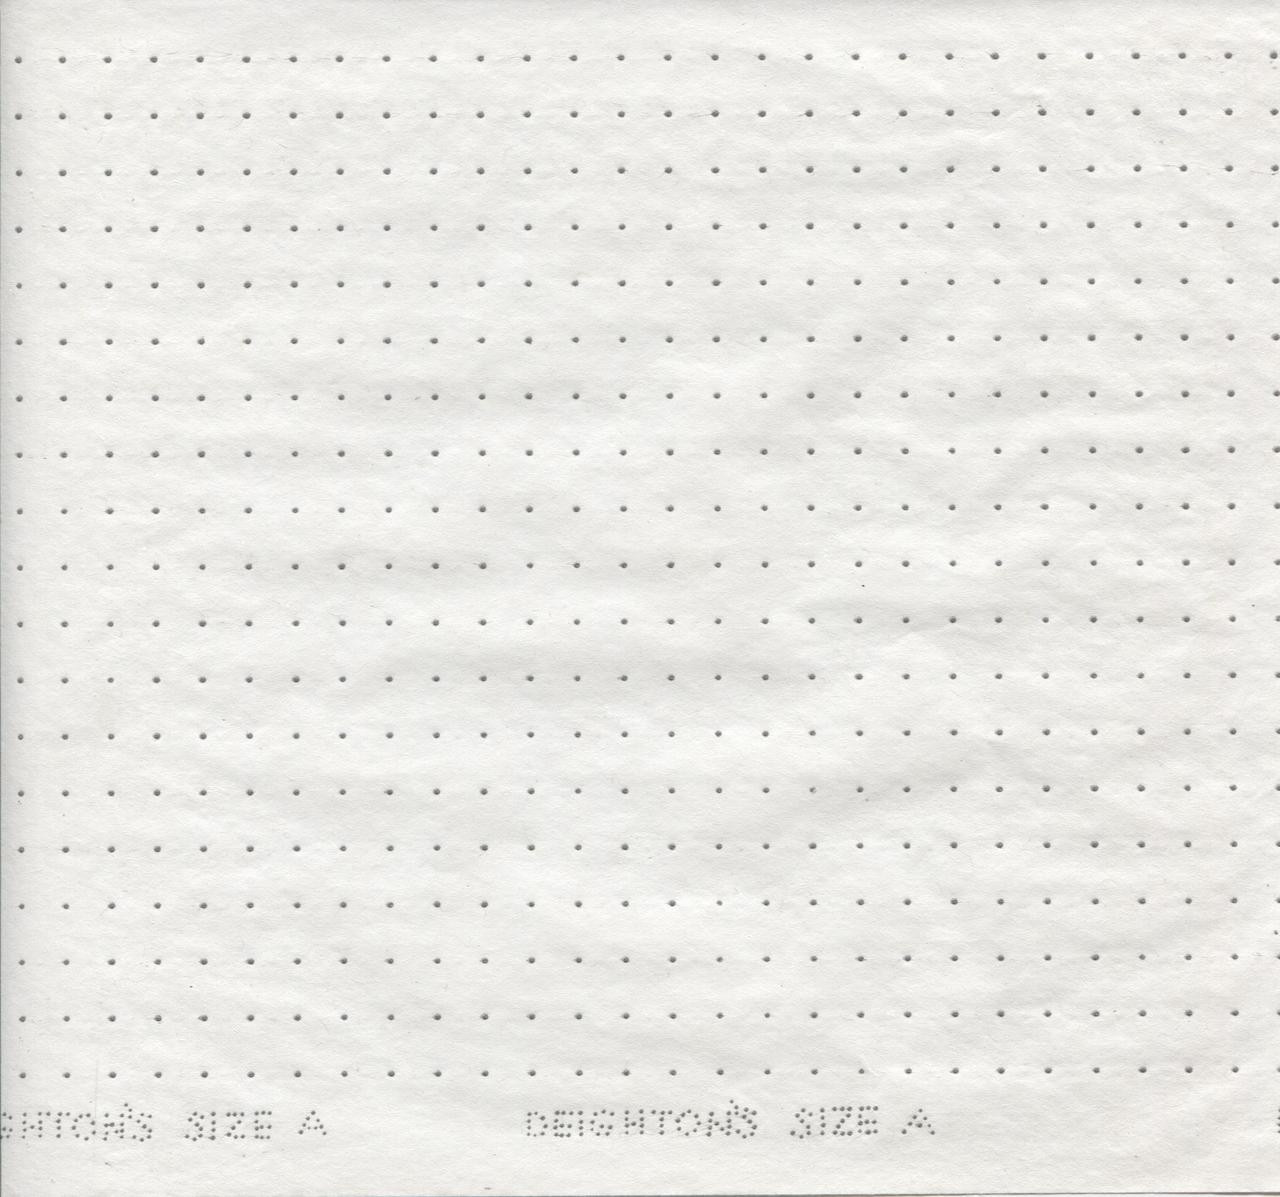 Smocking Transfer Dots - Size 'A' 8 mm x 9.5 mm - see video on how to use - one sheet in each pack